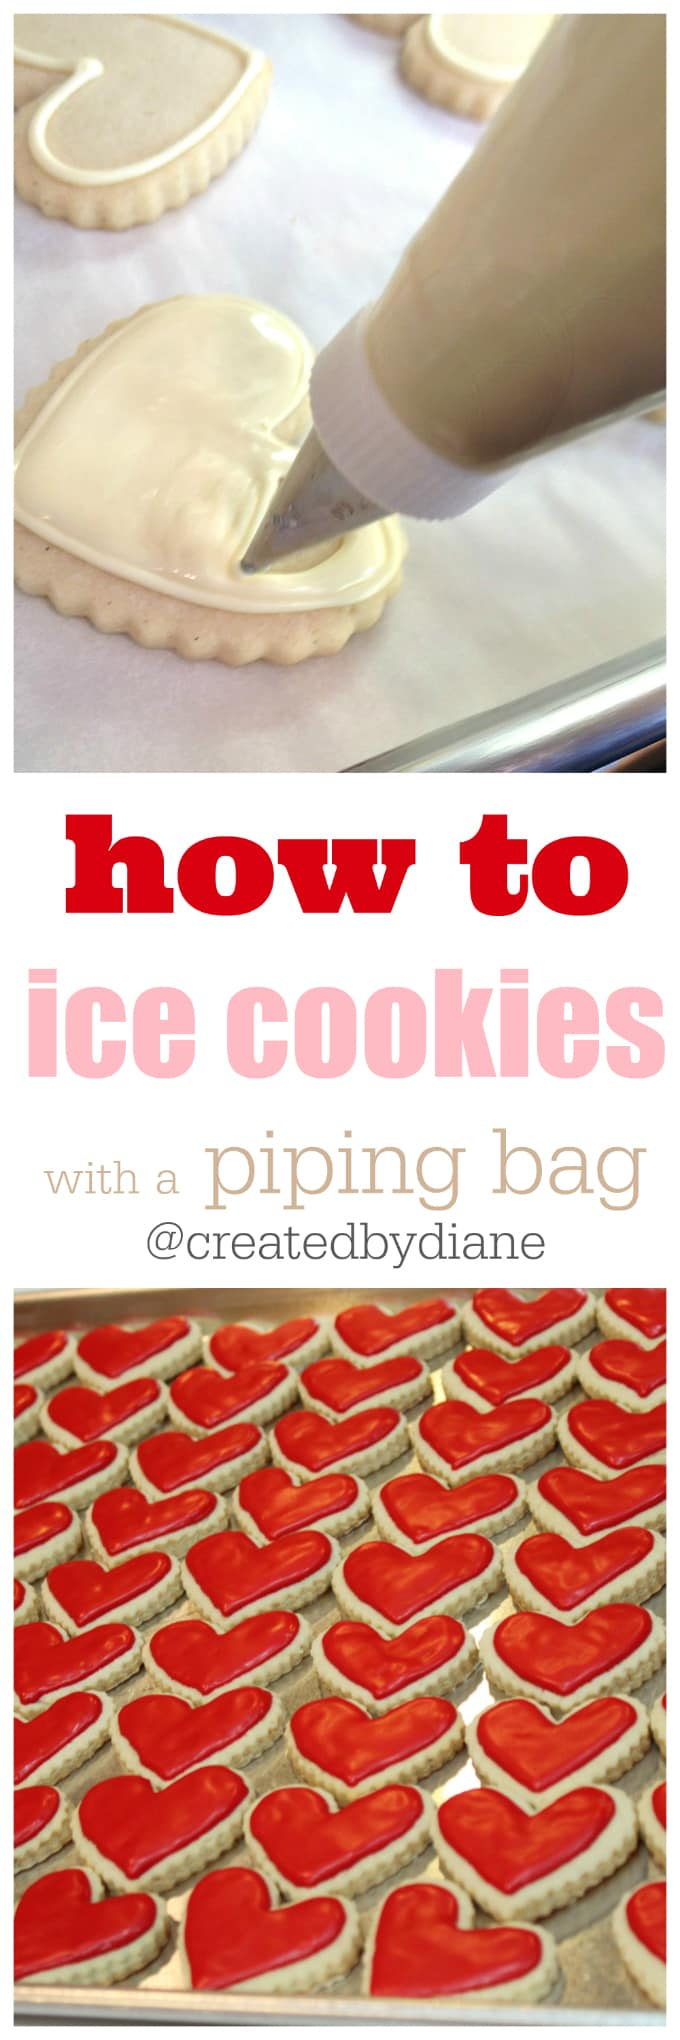 how to ice cookies with a piping bag, tips, tricks and recipes @createdbydiane